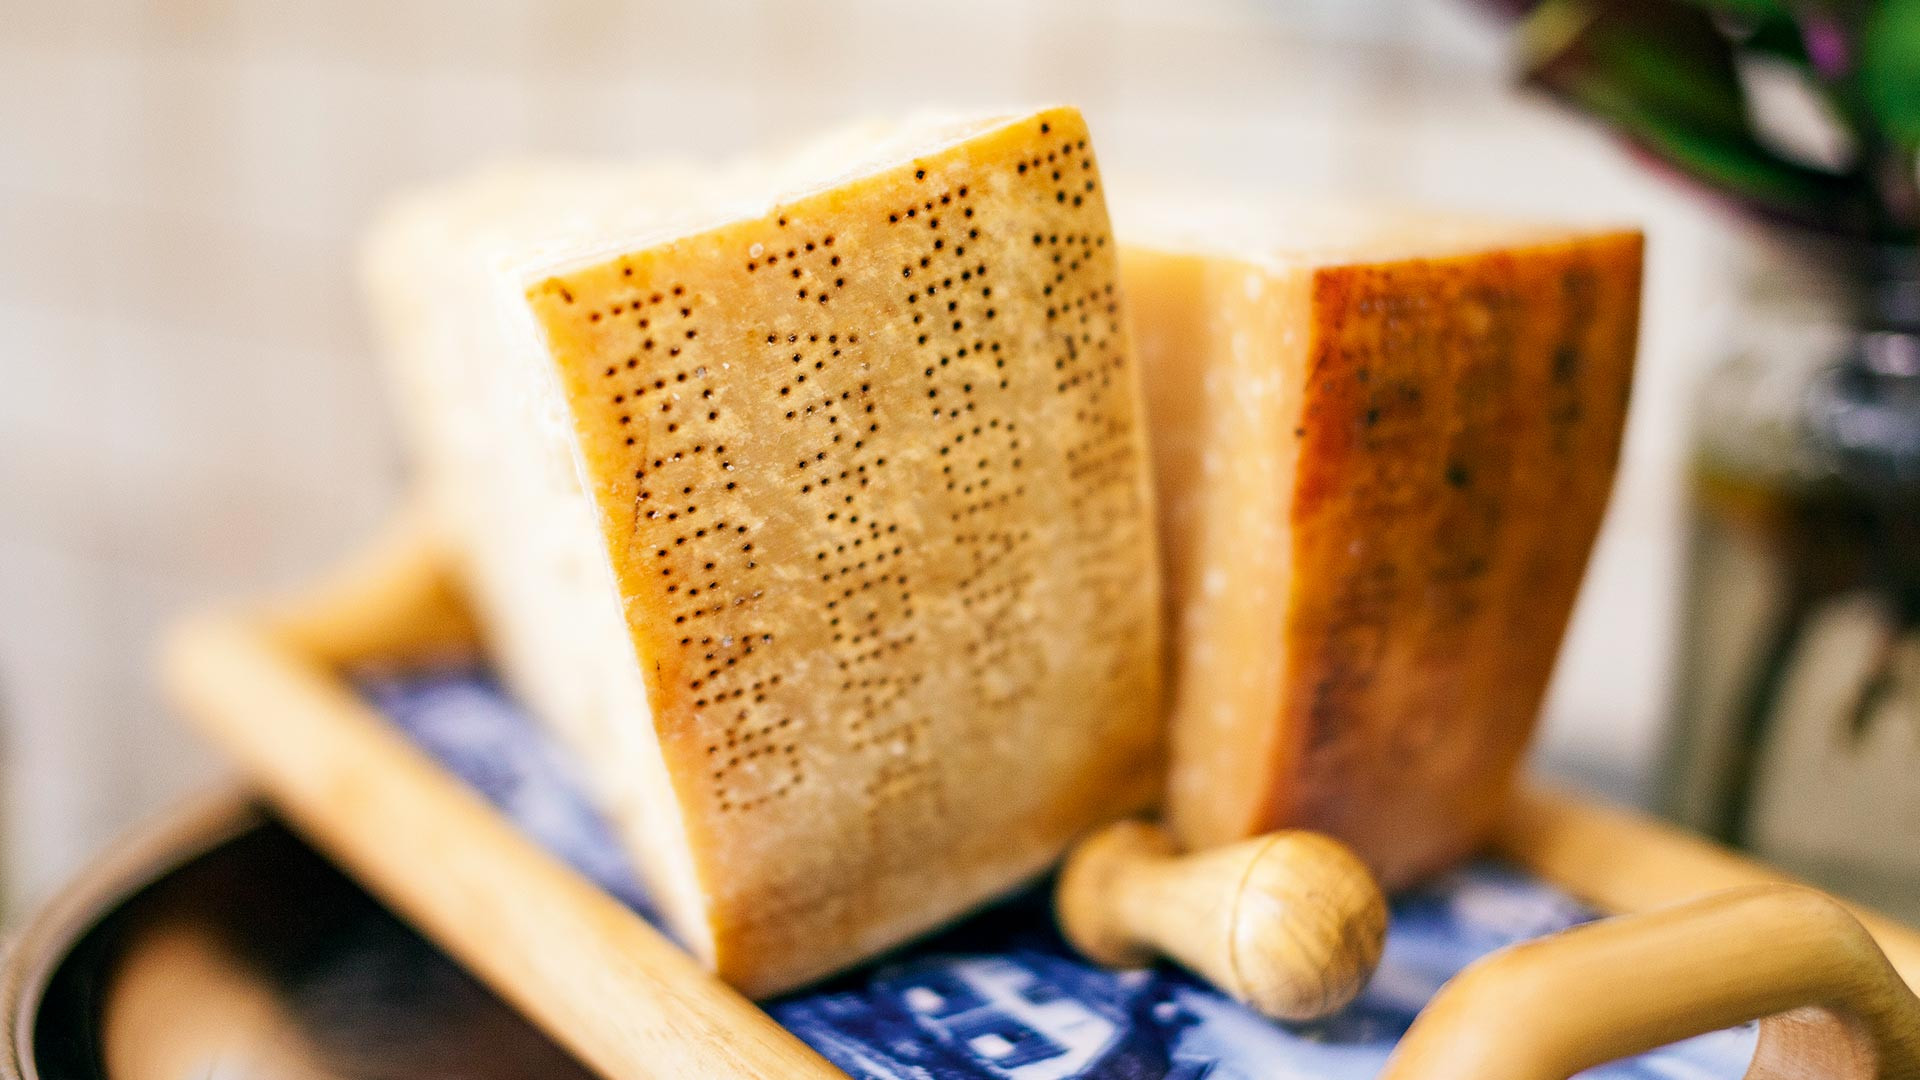 Wedges of Parmigiano-Reggiano